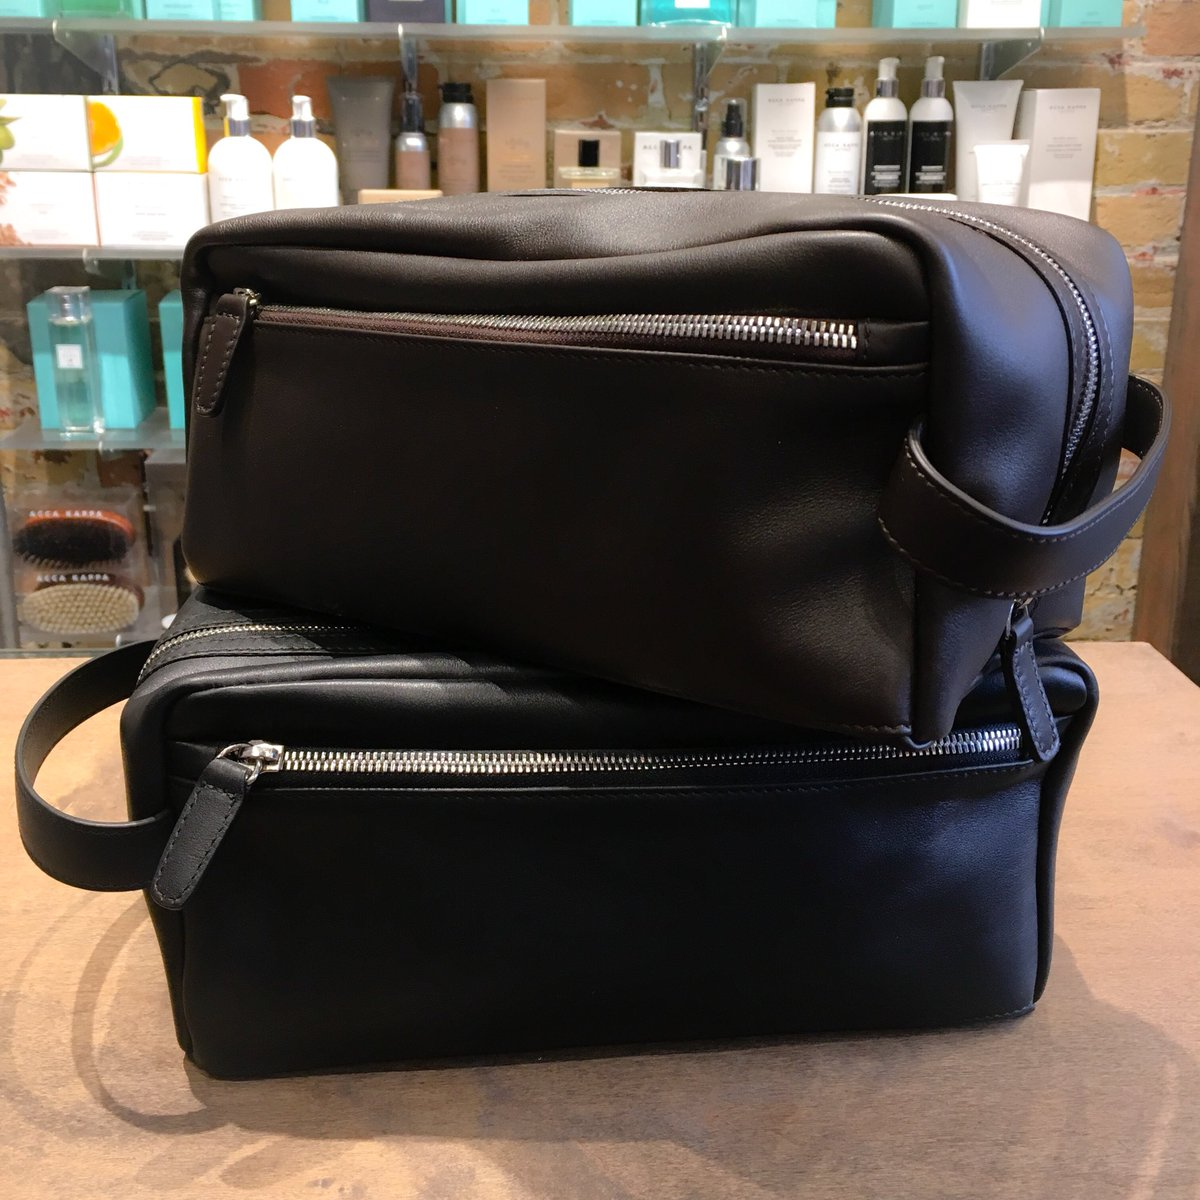 ... uk availability b25a3 e4608 These leather toiletry bags are made in  Italy and available in brown ... 2e1efacfc1